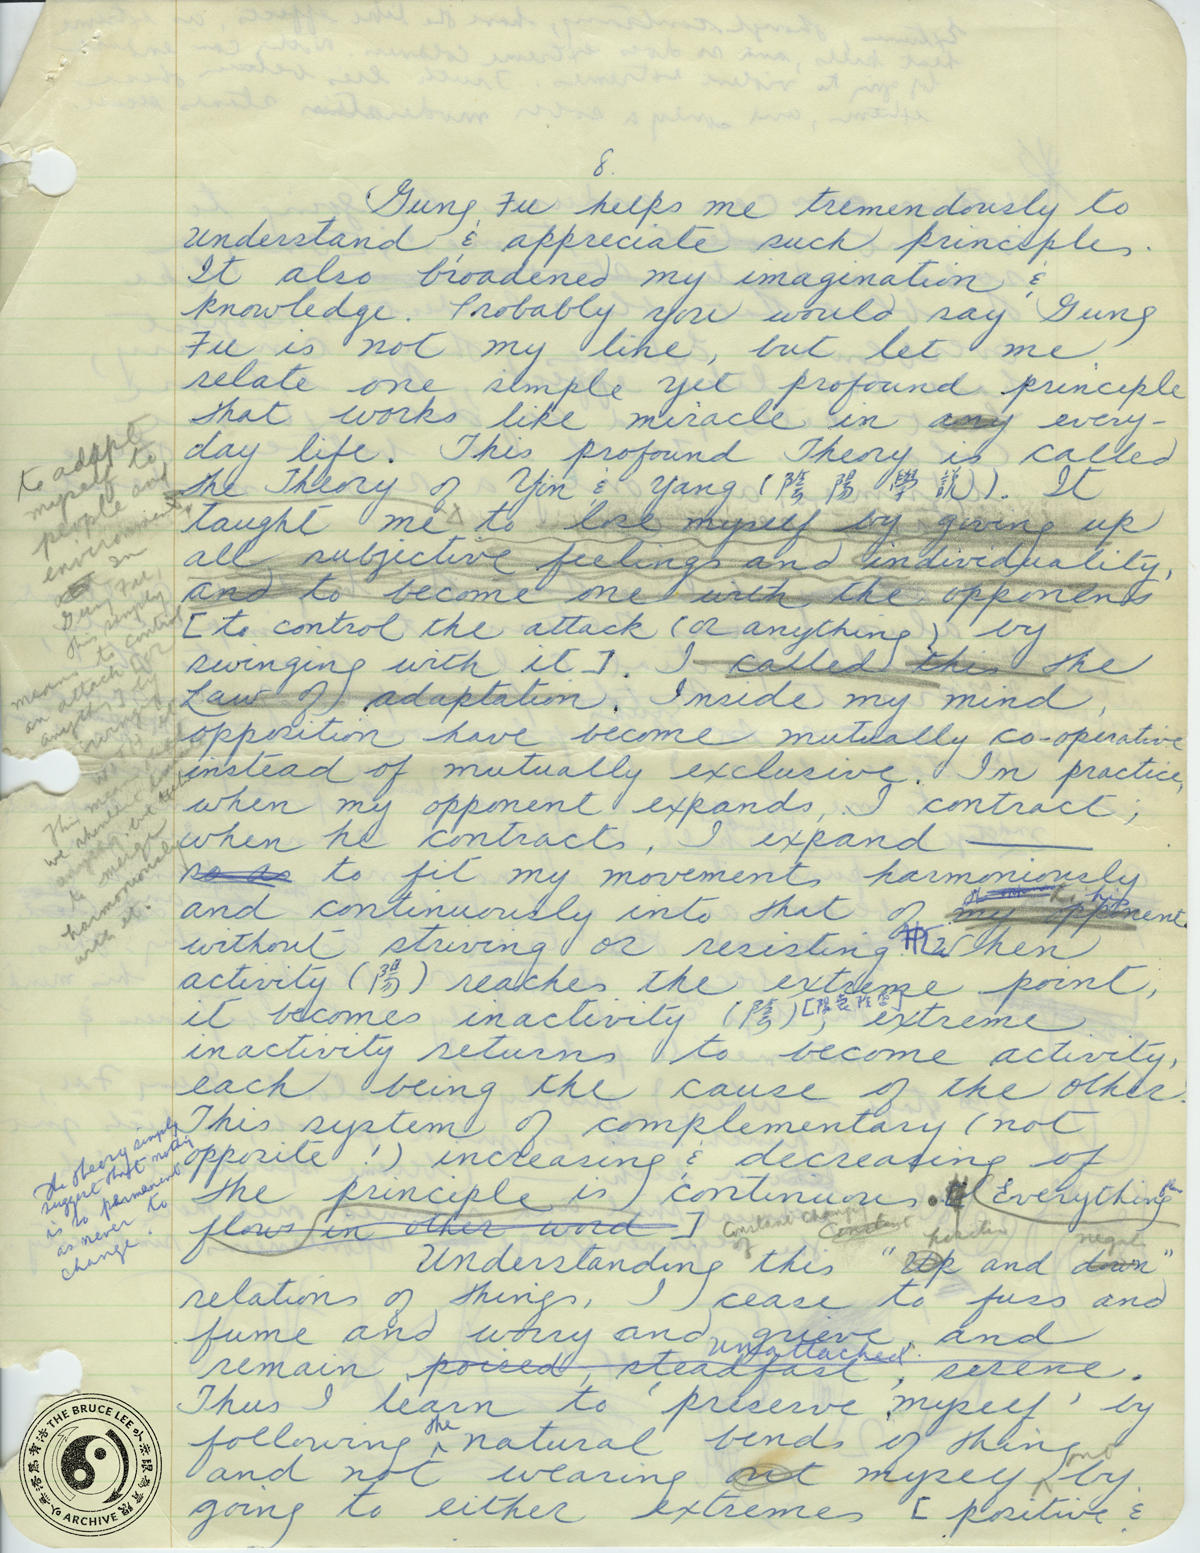 Letter-to-Pearl-draft-pg.8-archive.jpg